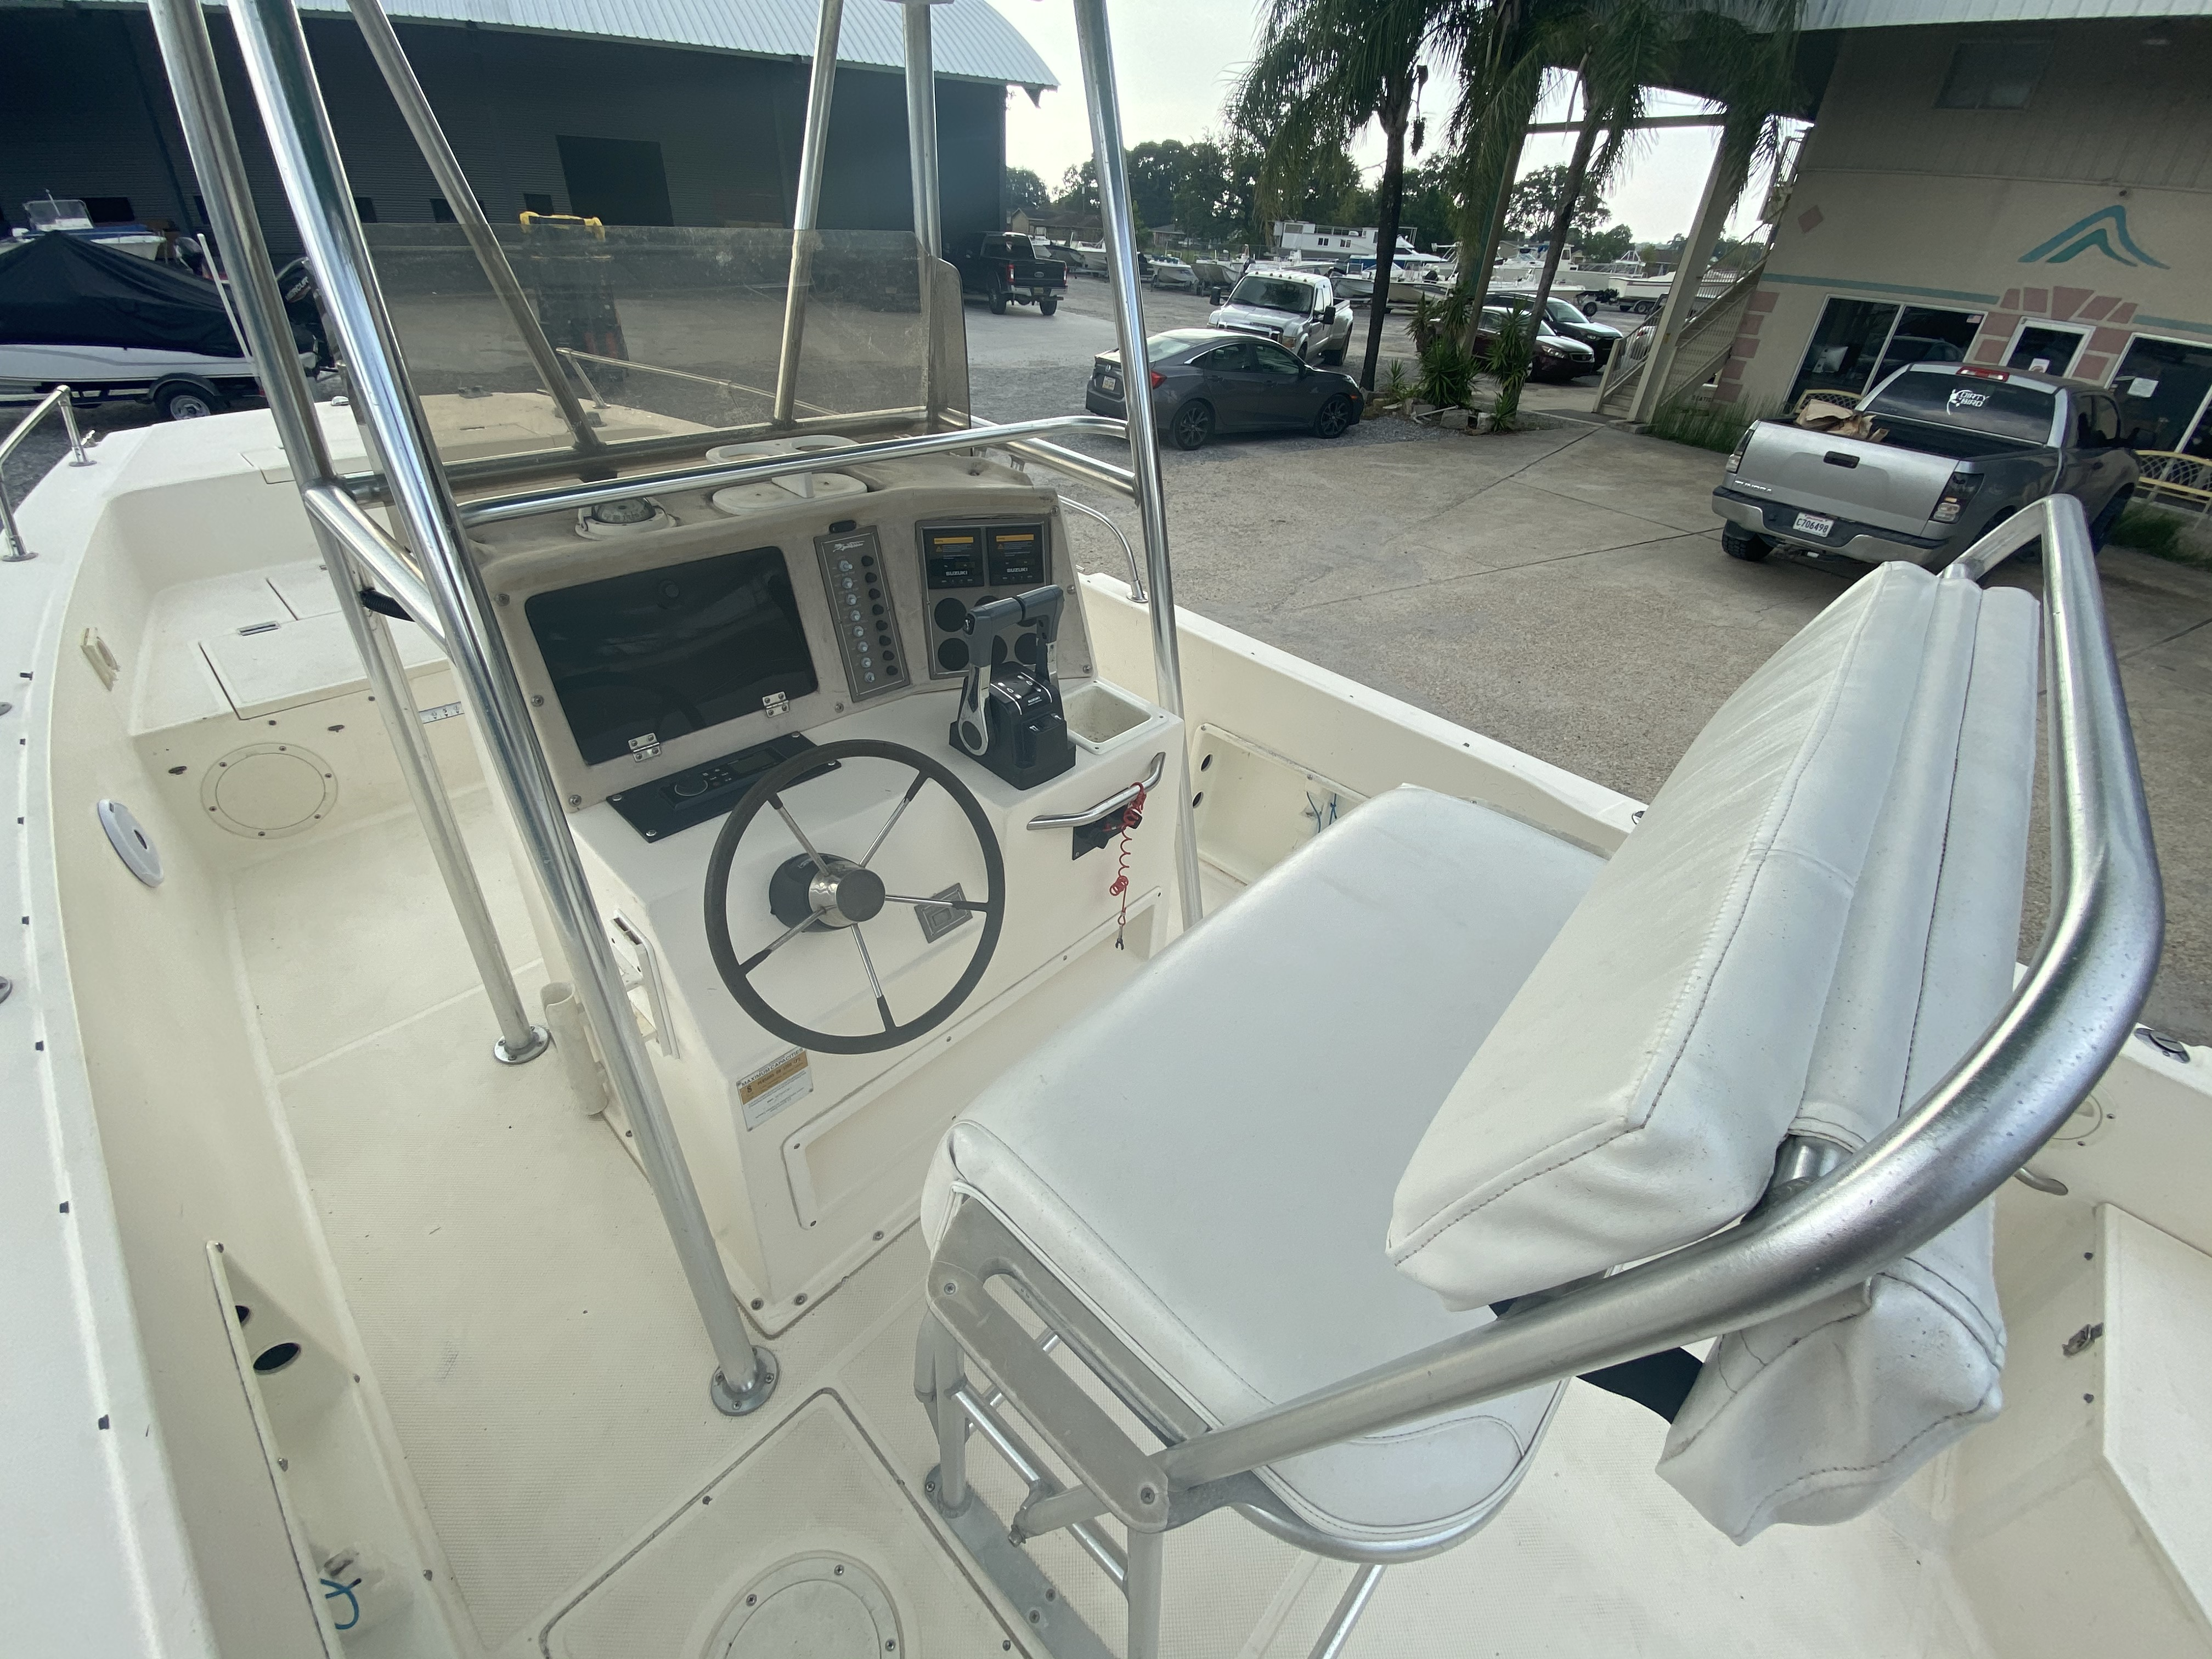 1996 Sea Cat boat for sale, model of the boat is 215 SL1 & Image # 14 of 25